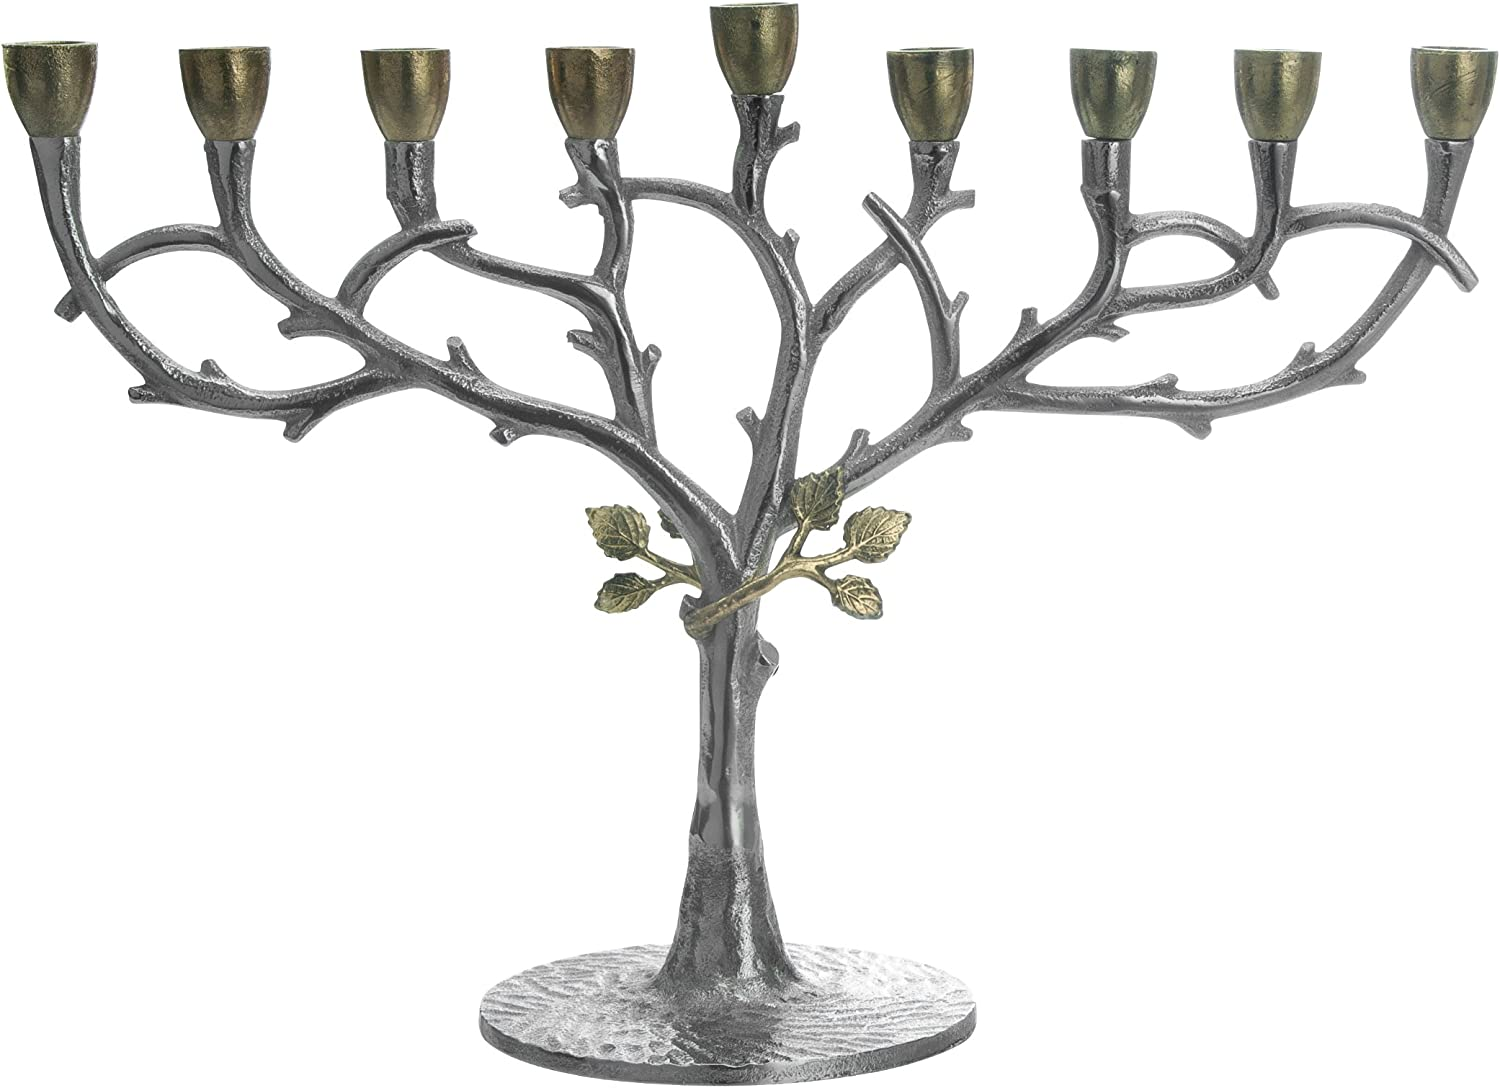 Classic Touch San Diego Mall MIM25 Hammered Popular products Stainless Steel Menorah Oil